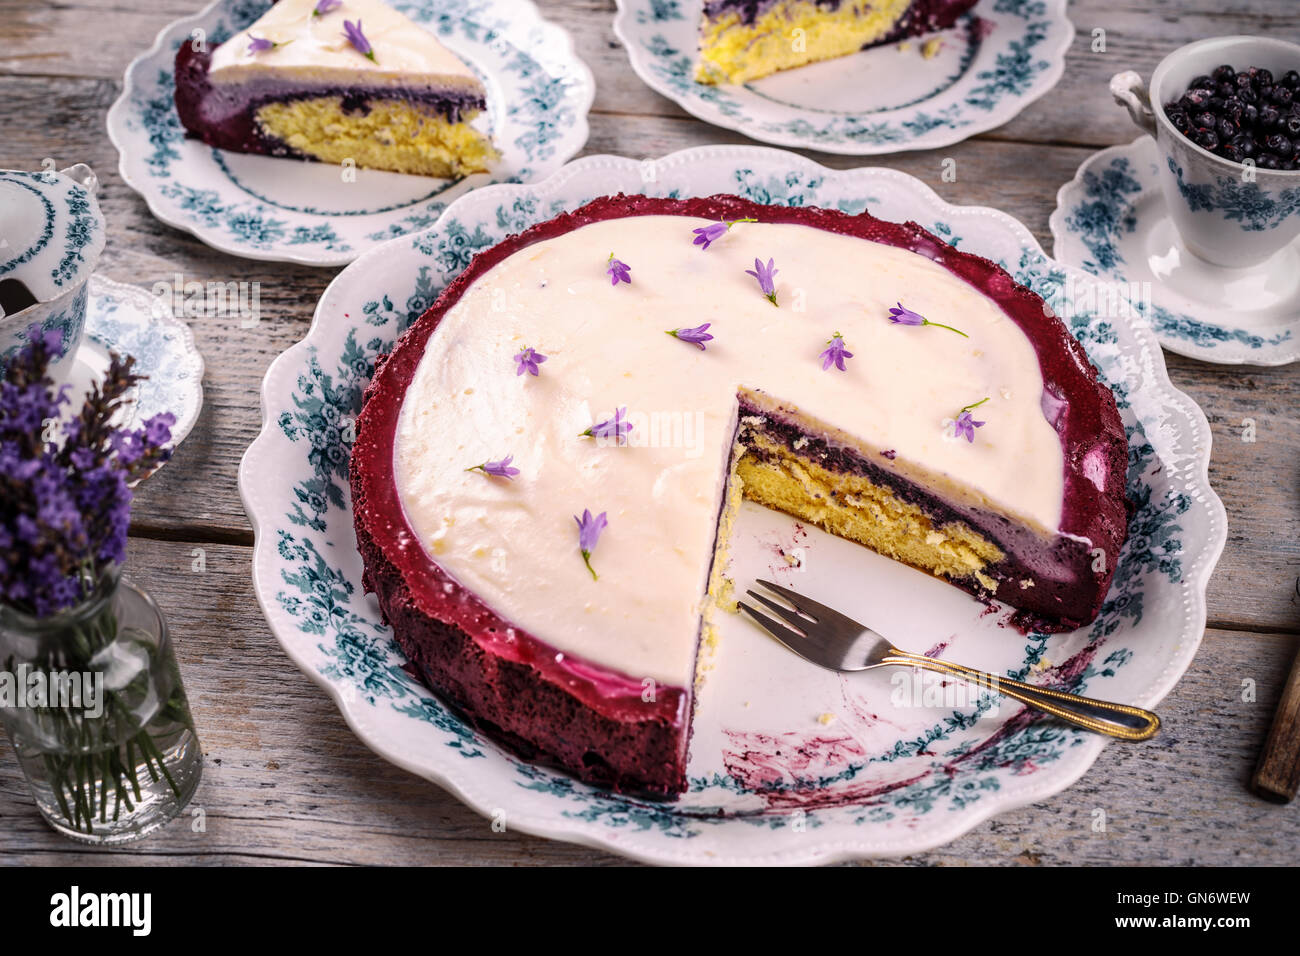 Cake with cream cheese and blueberries - Stock Image